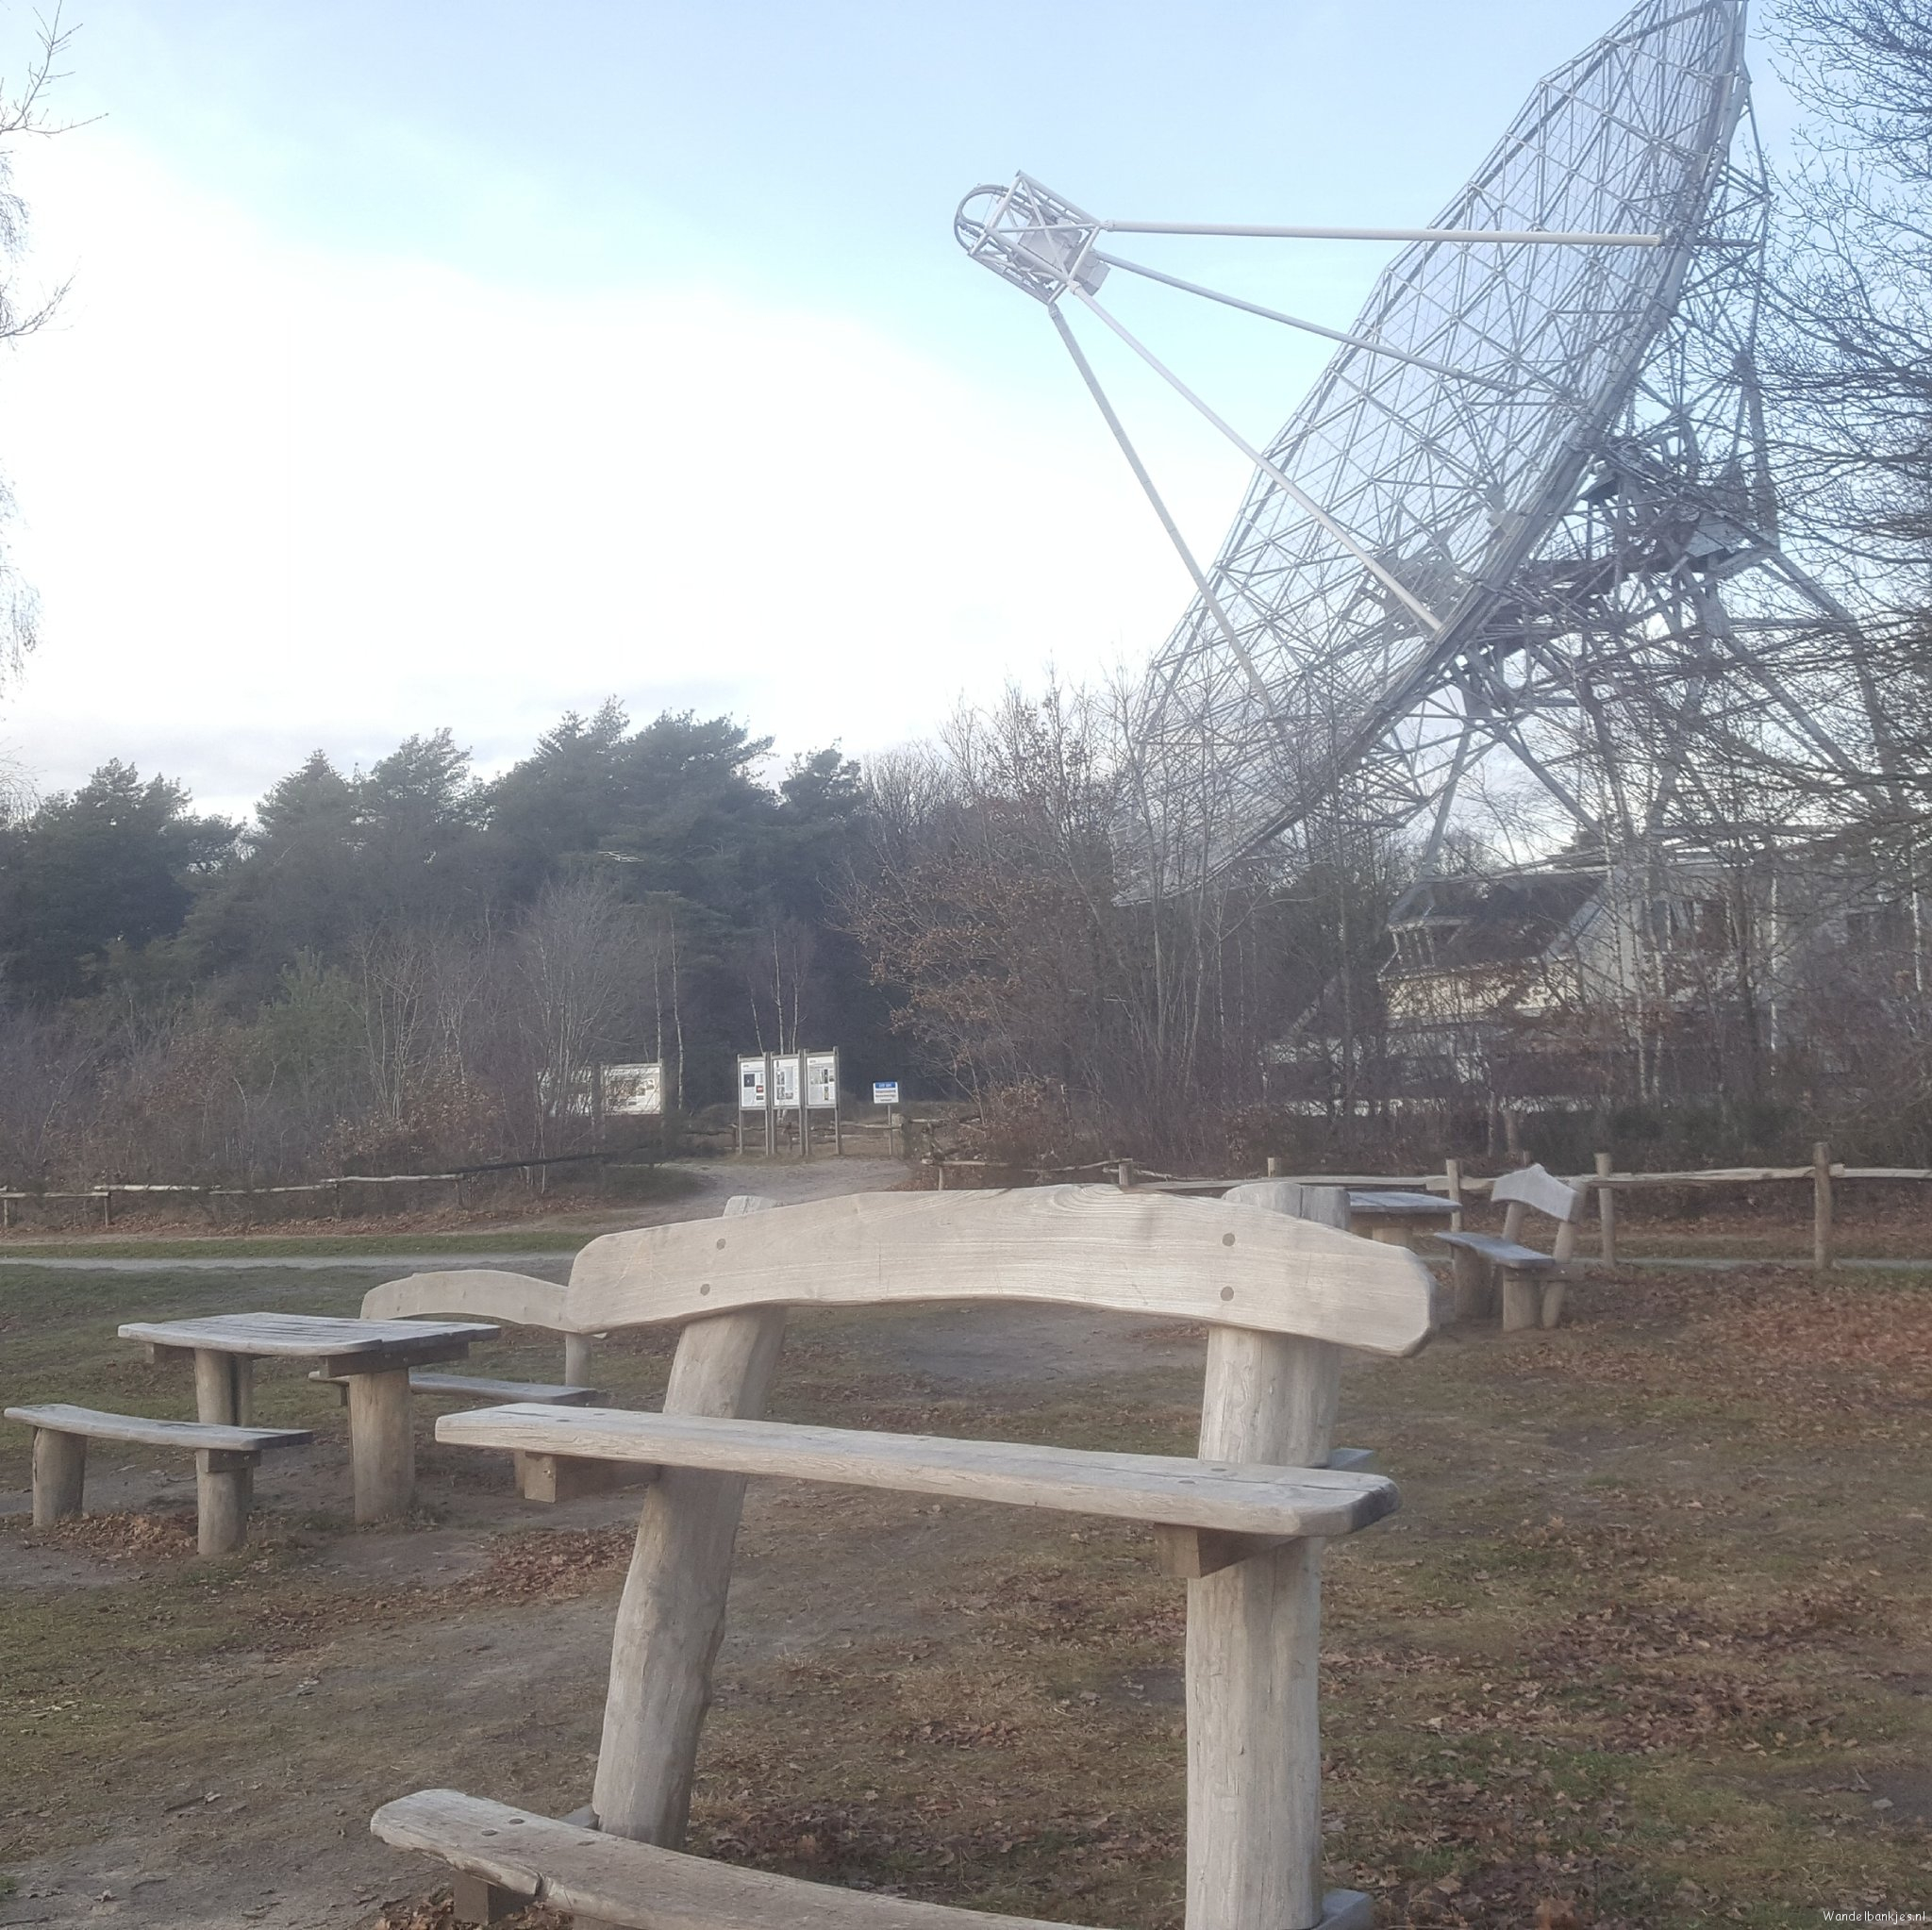 rt-safe-foot-walking-benches-near-radio-telescope-dwingelderveld-astron_en-https-t-co-mmva0iiqdo